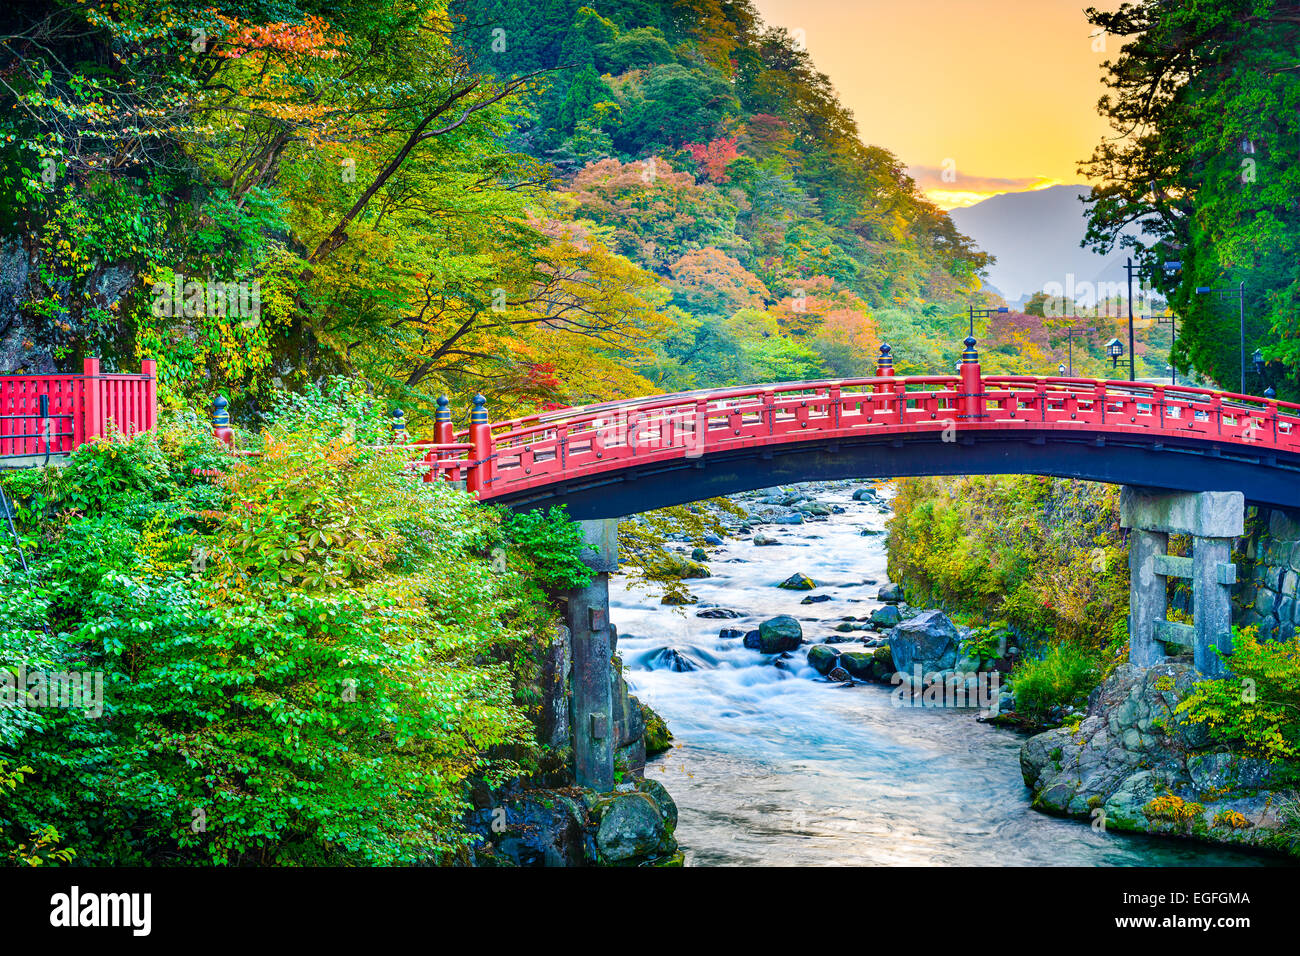 Nikko, Japan at Shinkyo Bridge. - Stock Image